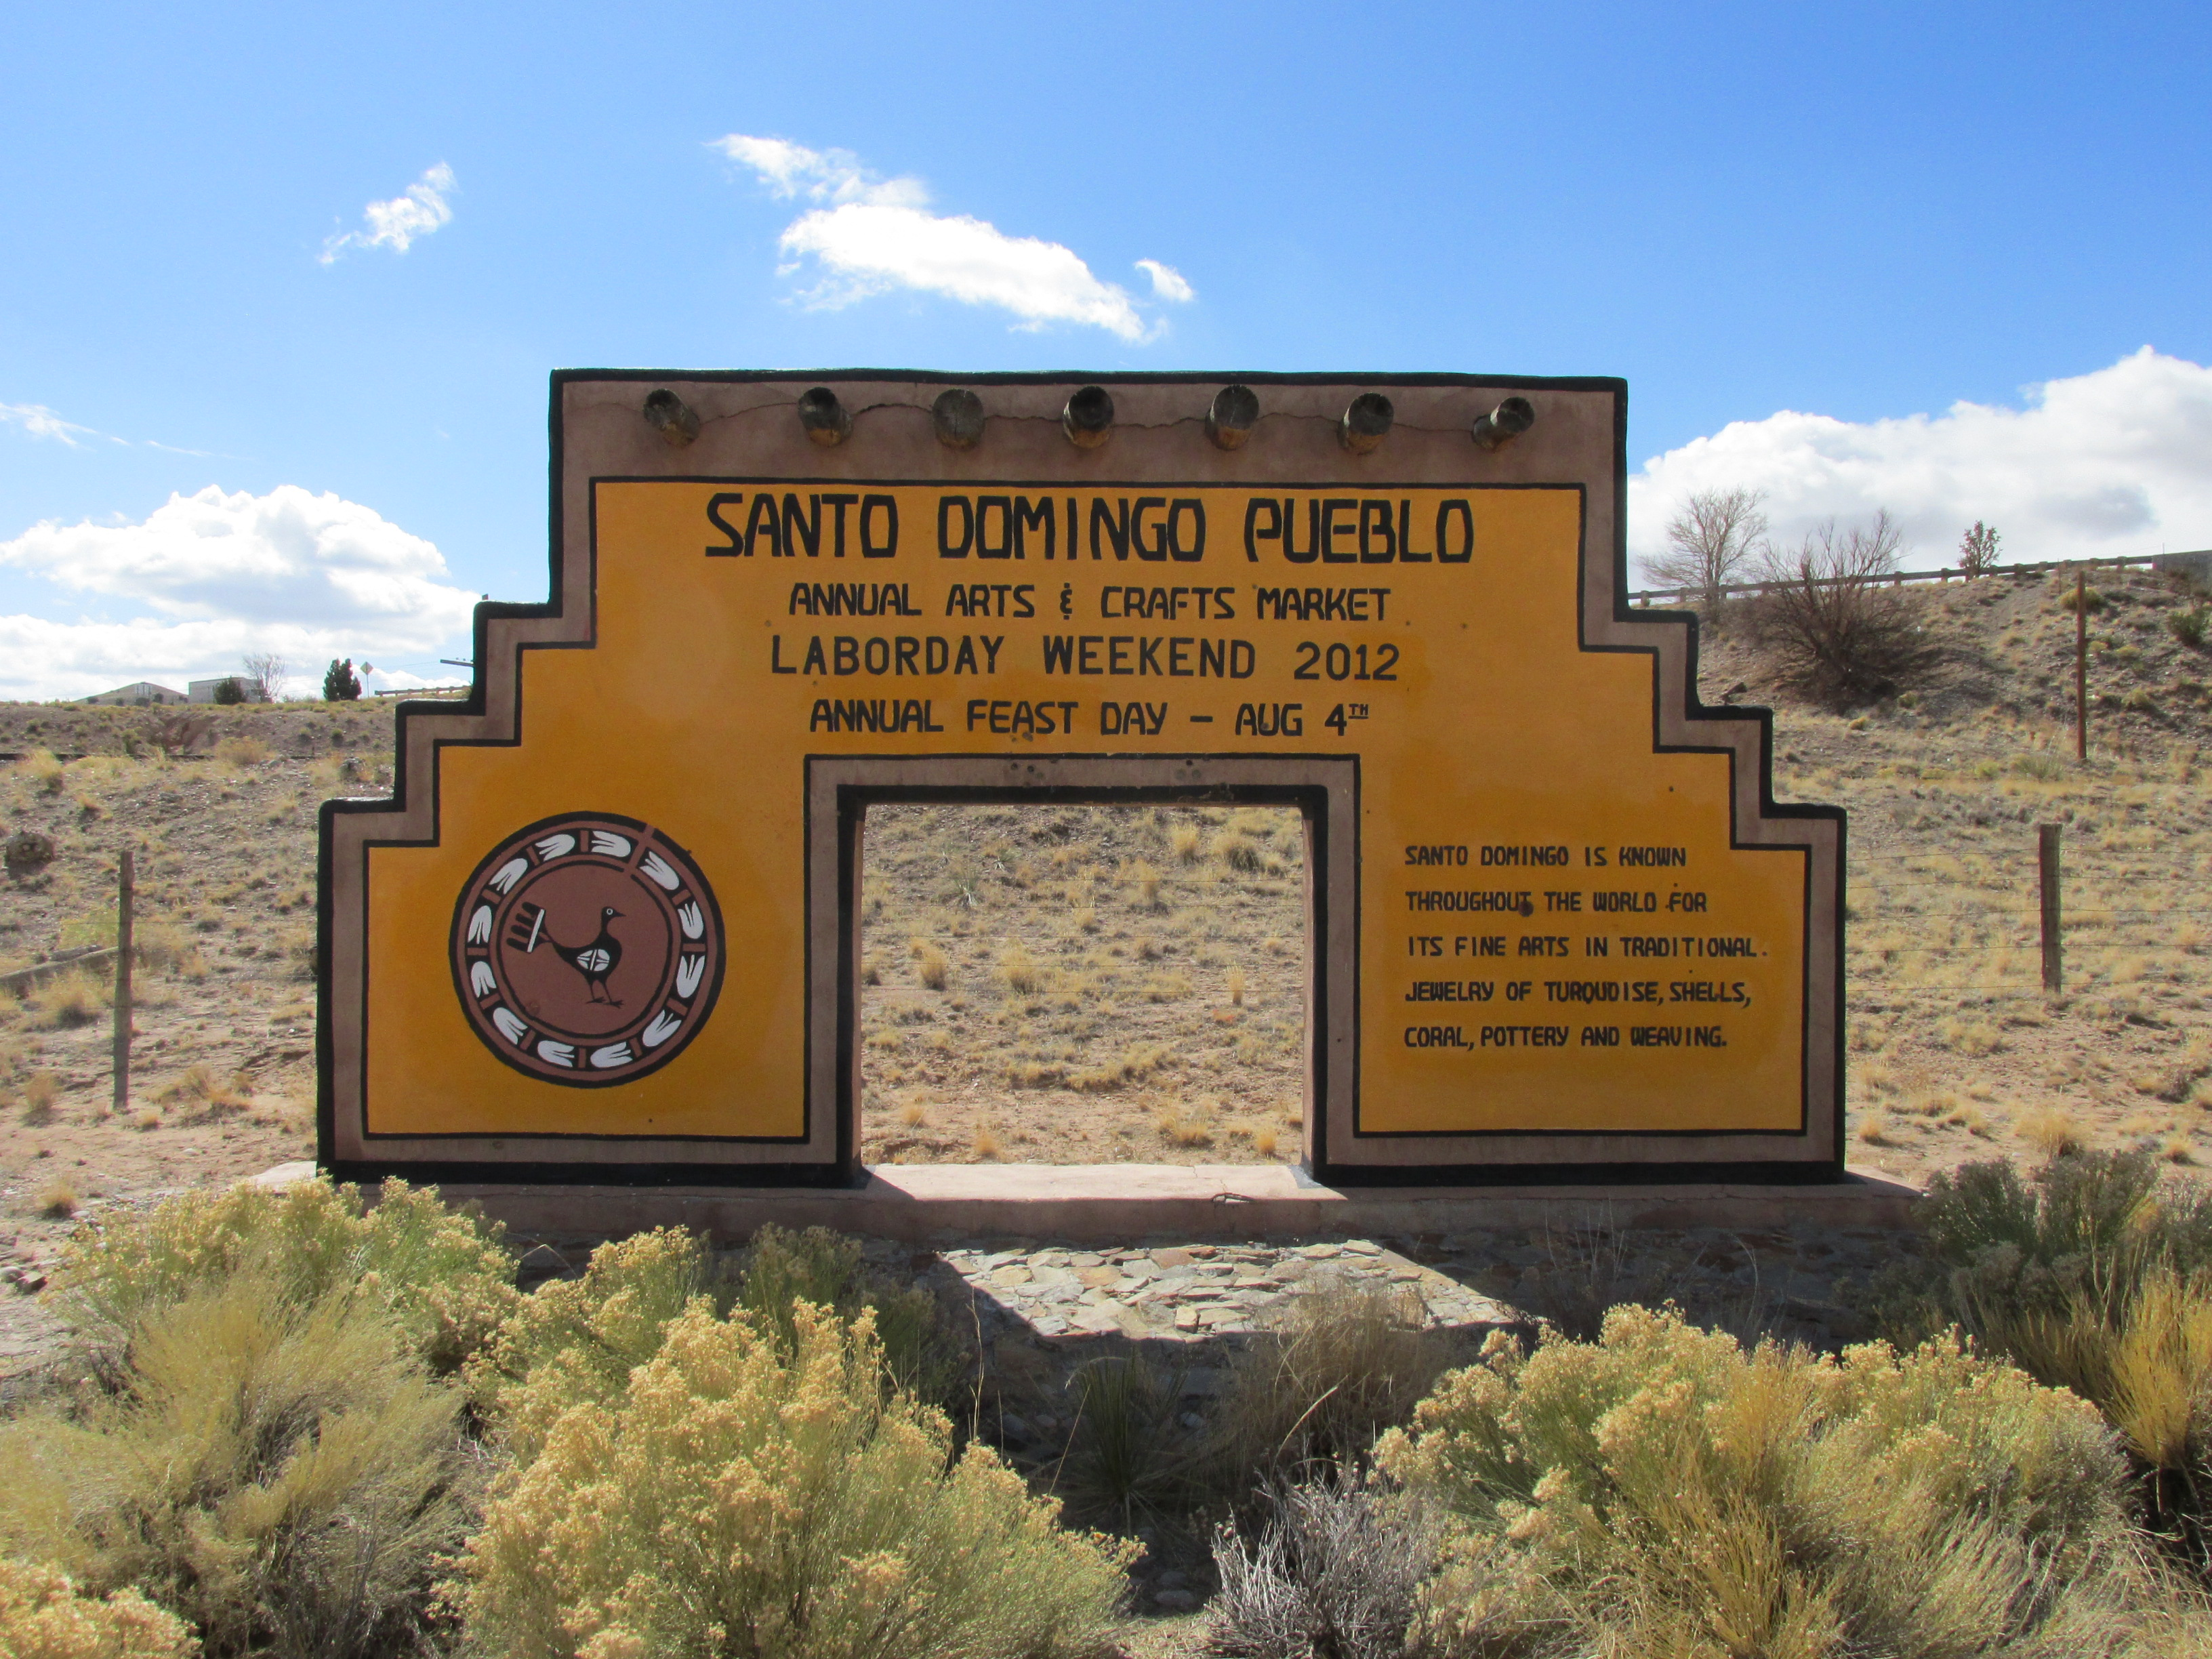 Swingers in santo domingo pueblo new mexico Southwestern Ruins slide collection now digitized!, CC Special Collections